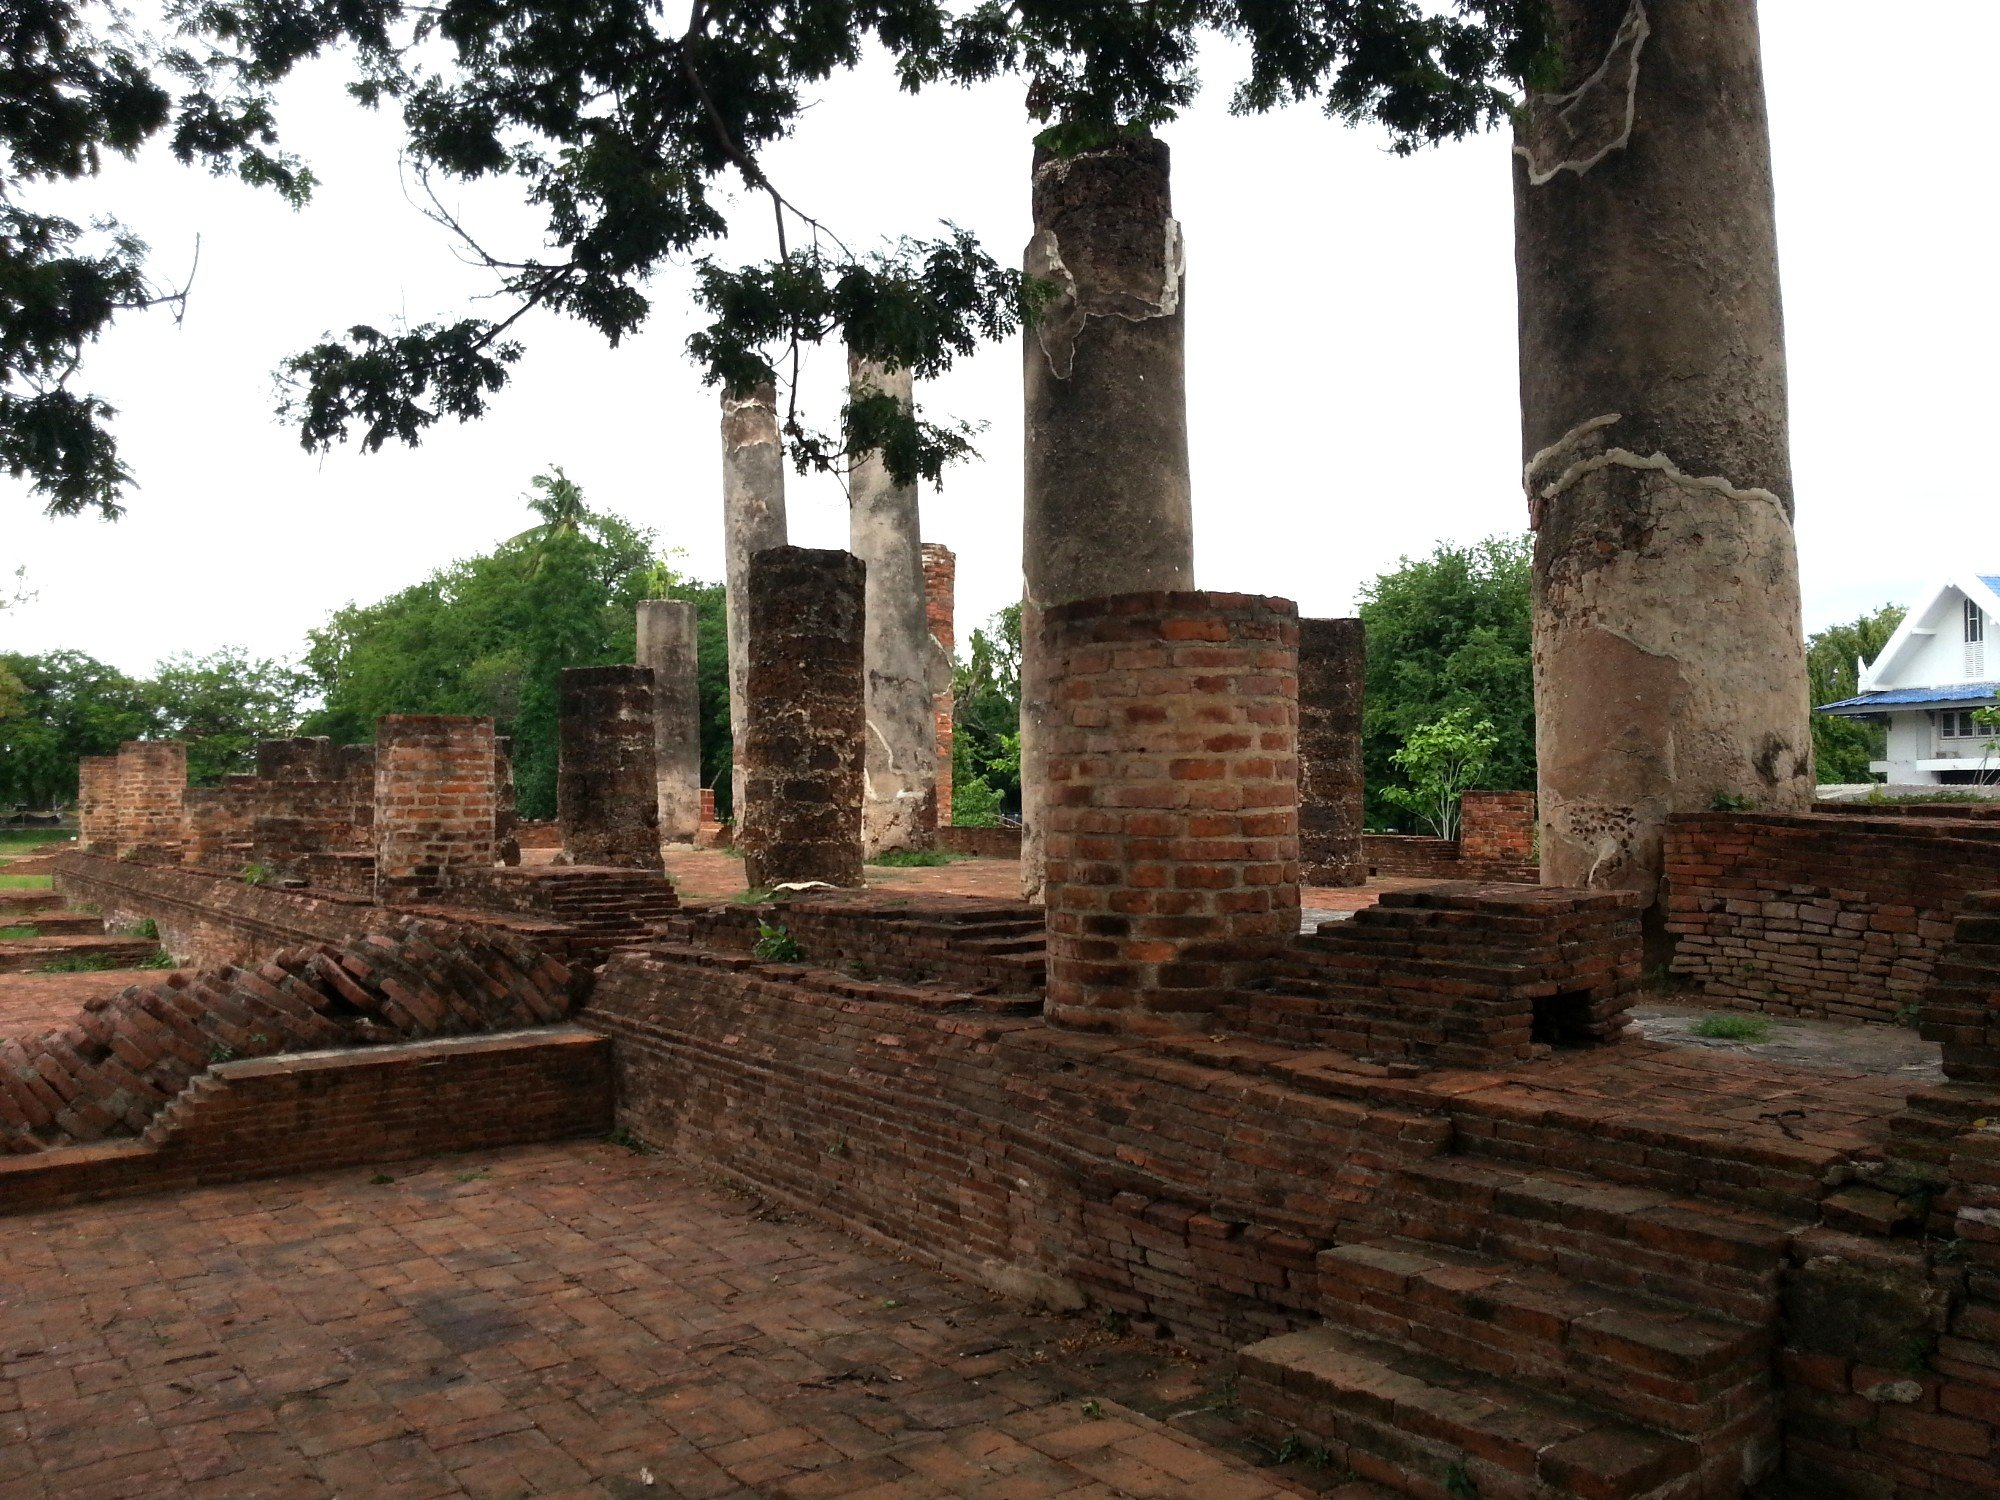 Remains of the prayer hall at Wat Wihan Thong